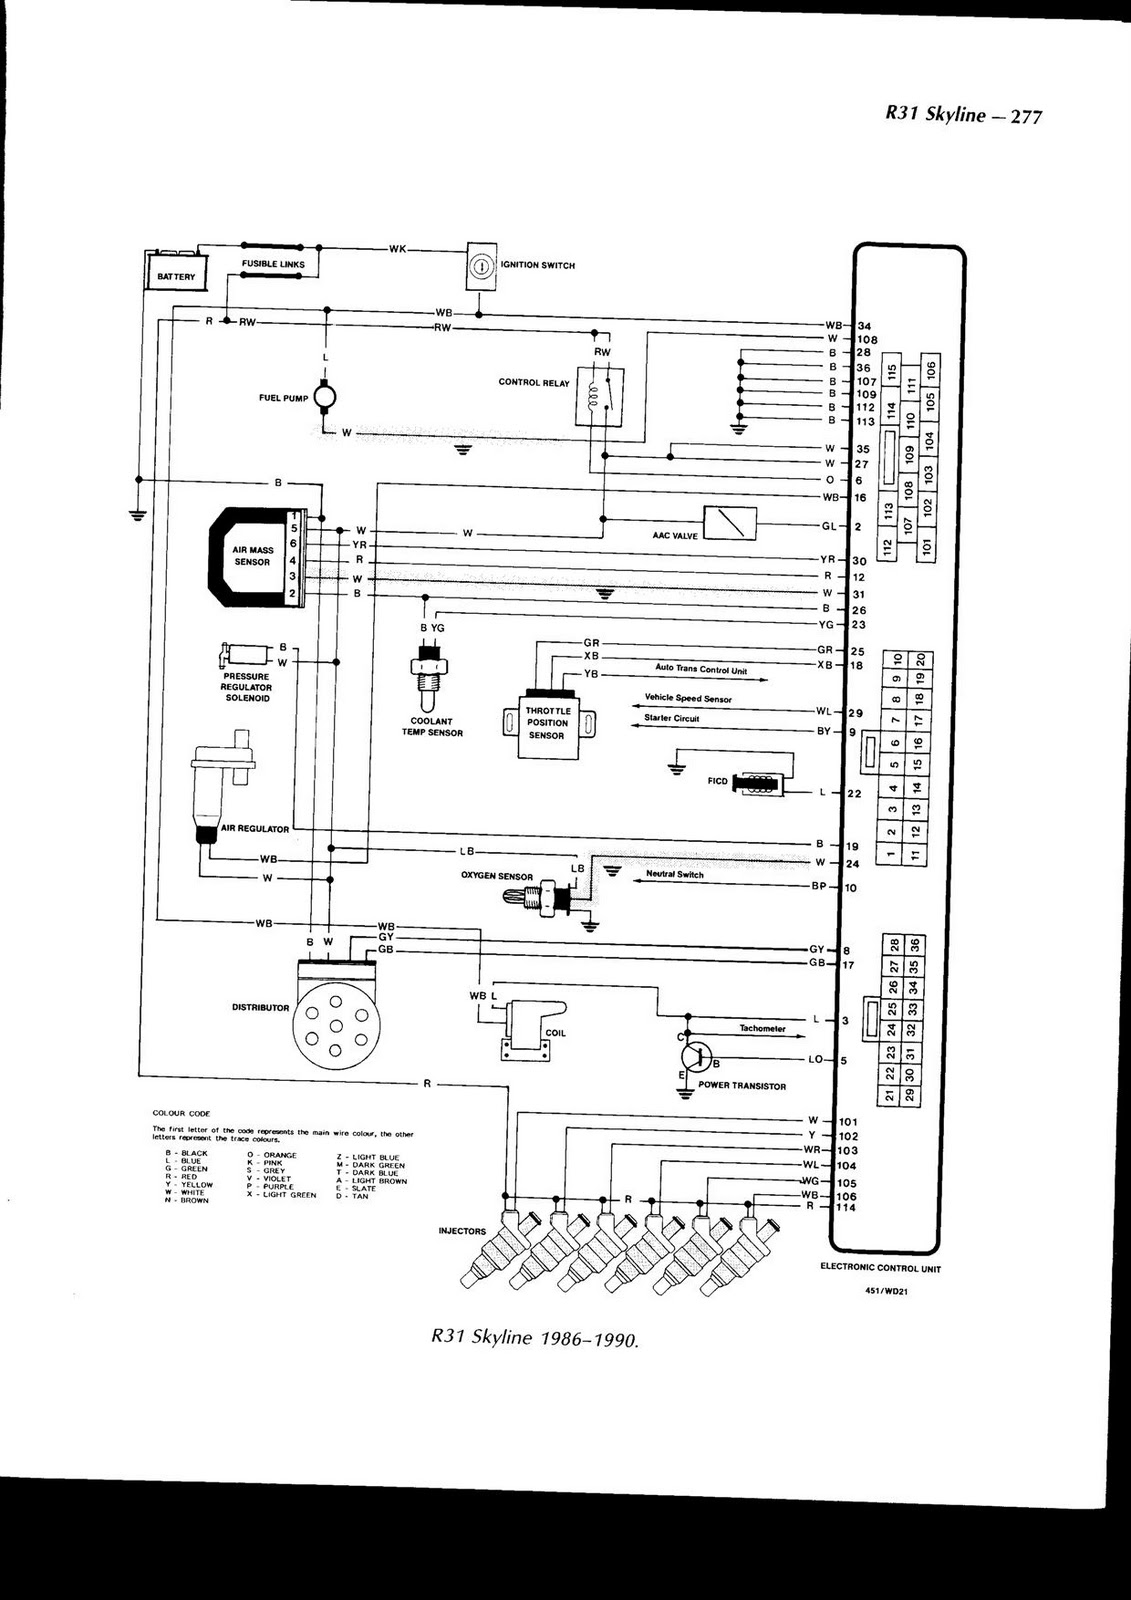 Autotransformer Wiring Diagram Get Free Image About Wiring Diagram